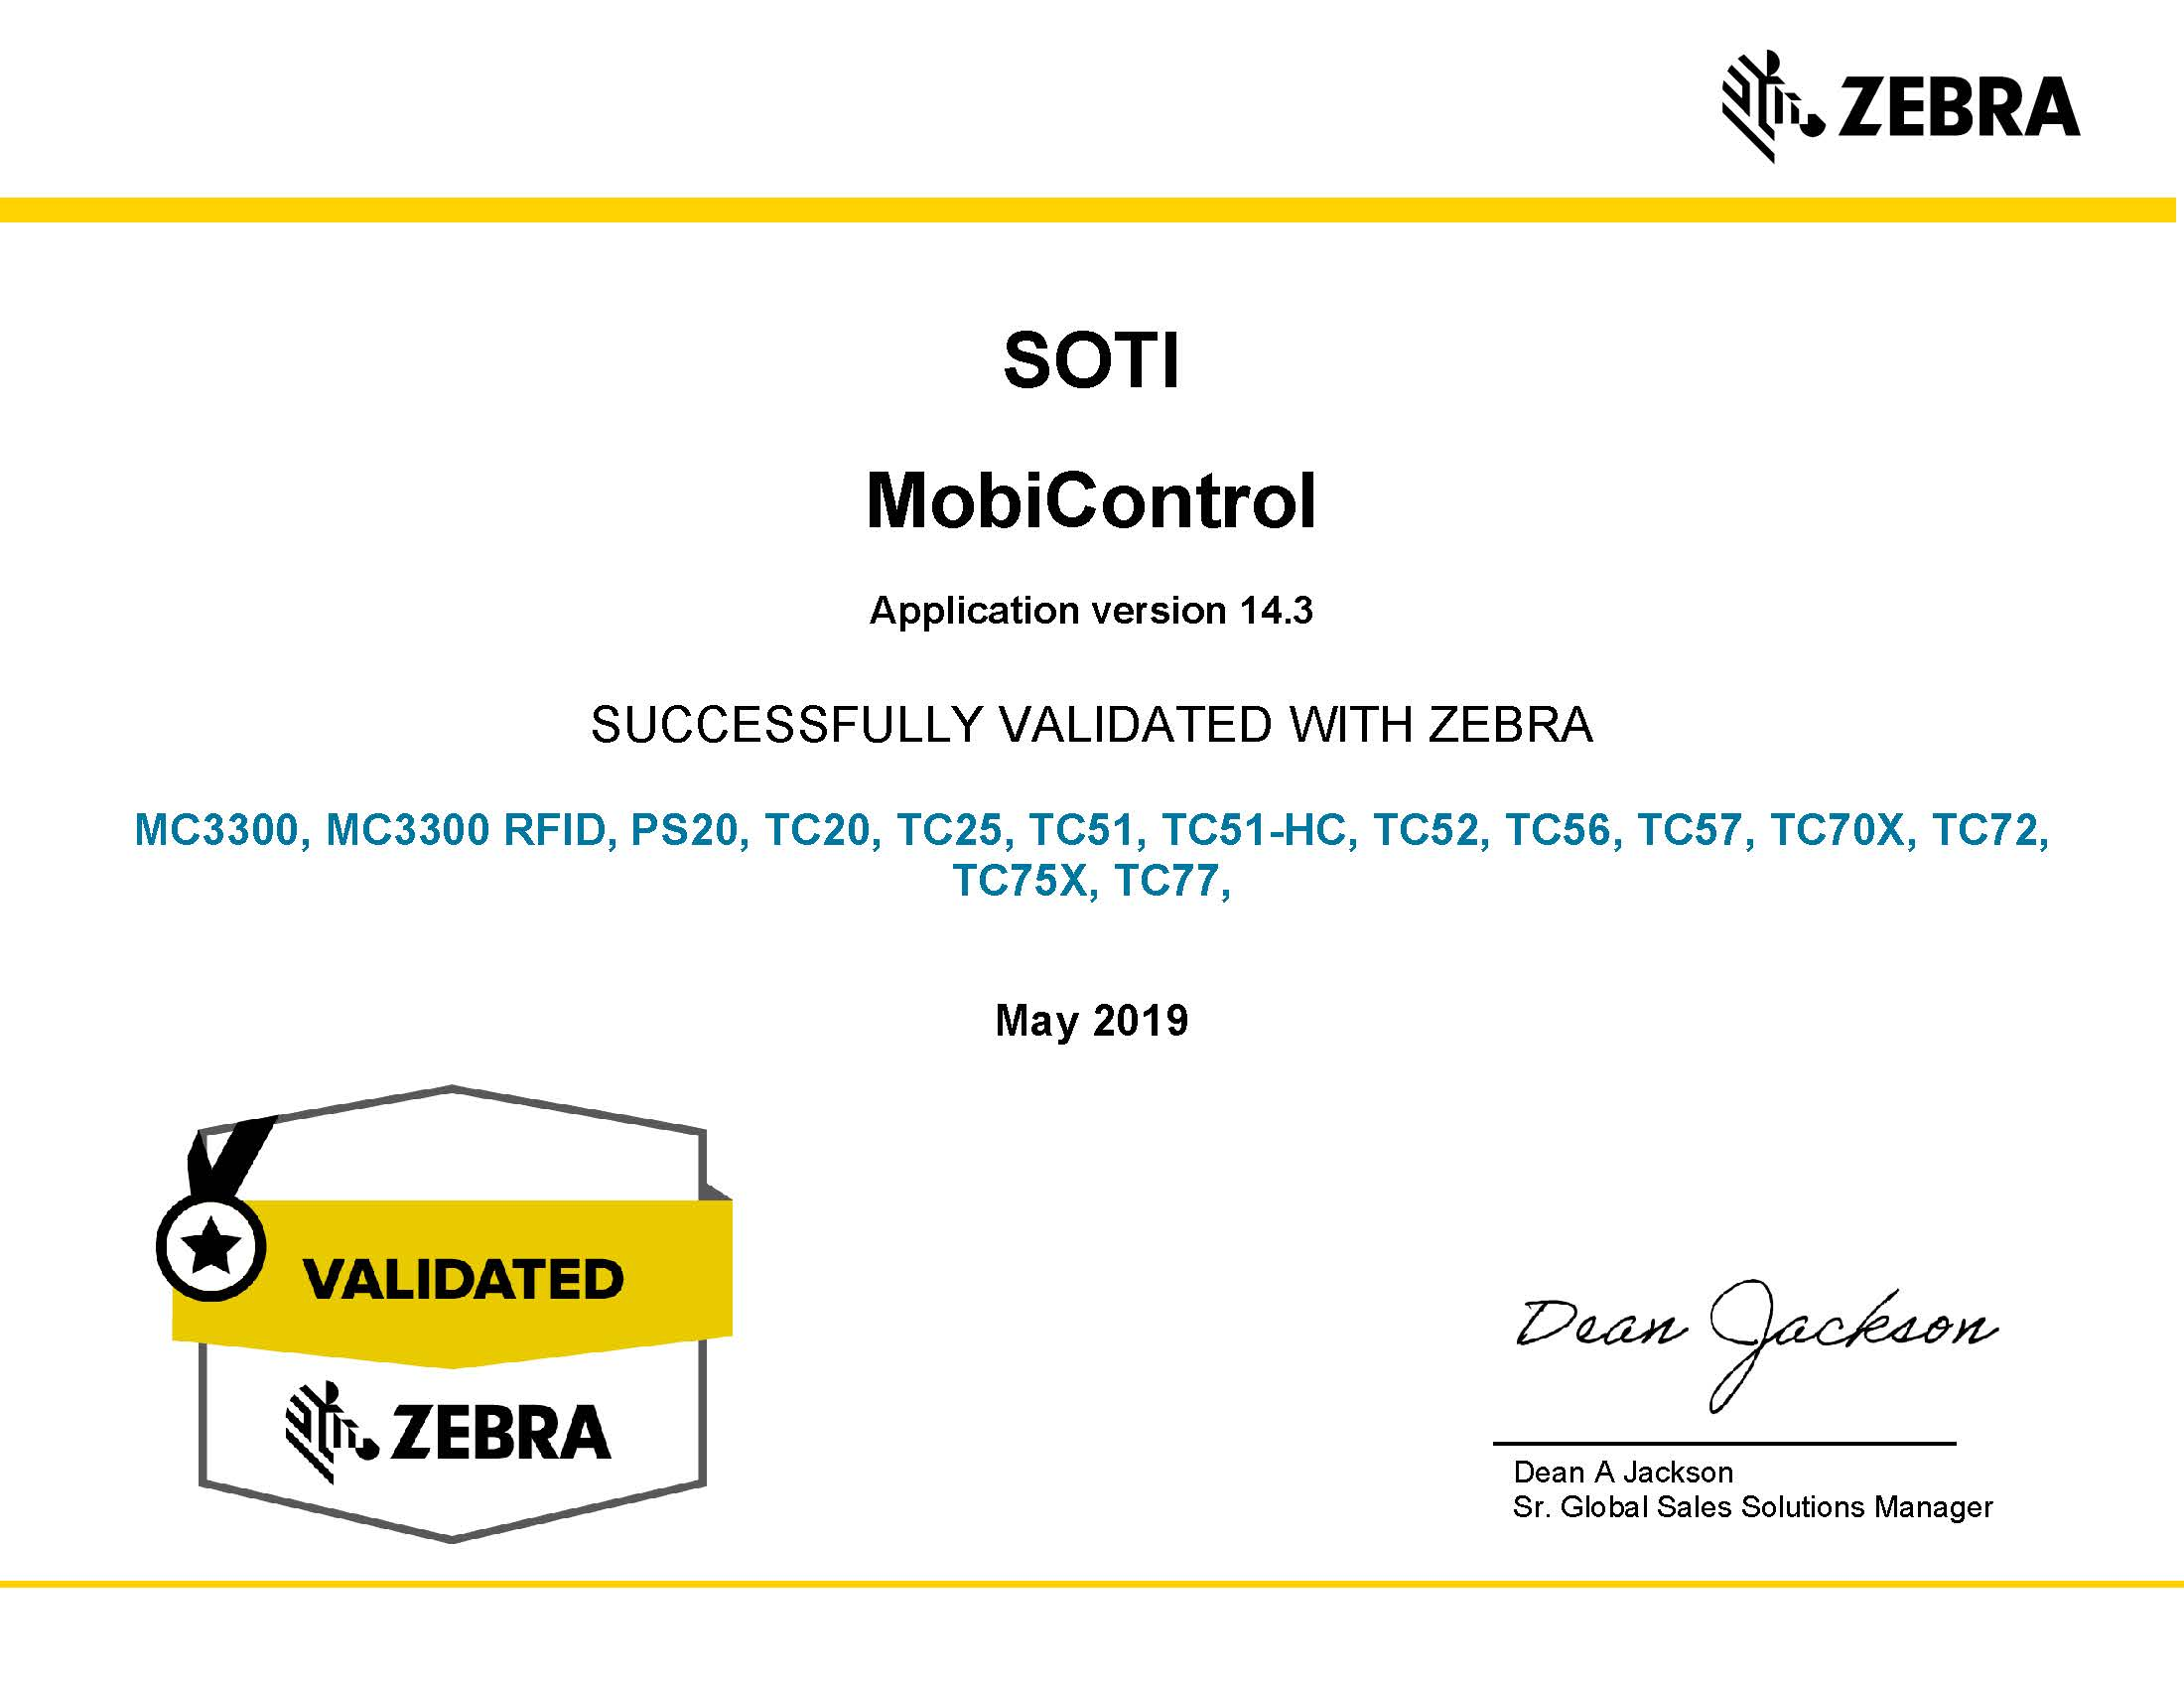 SOTI MobiControl v14.3 is successfully validated with Zebra Solutions